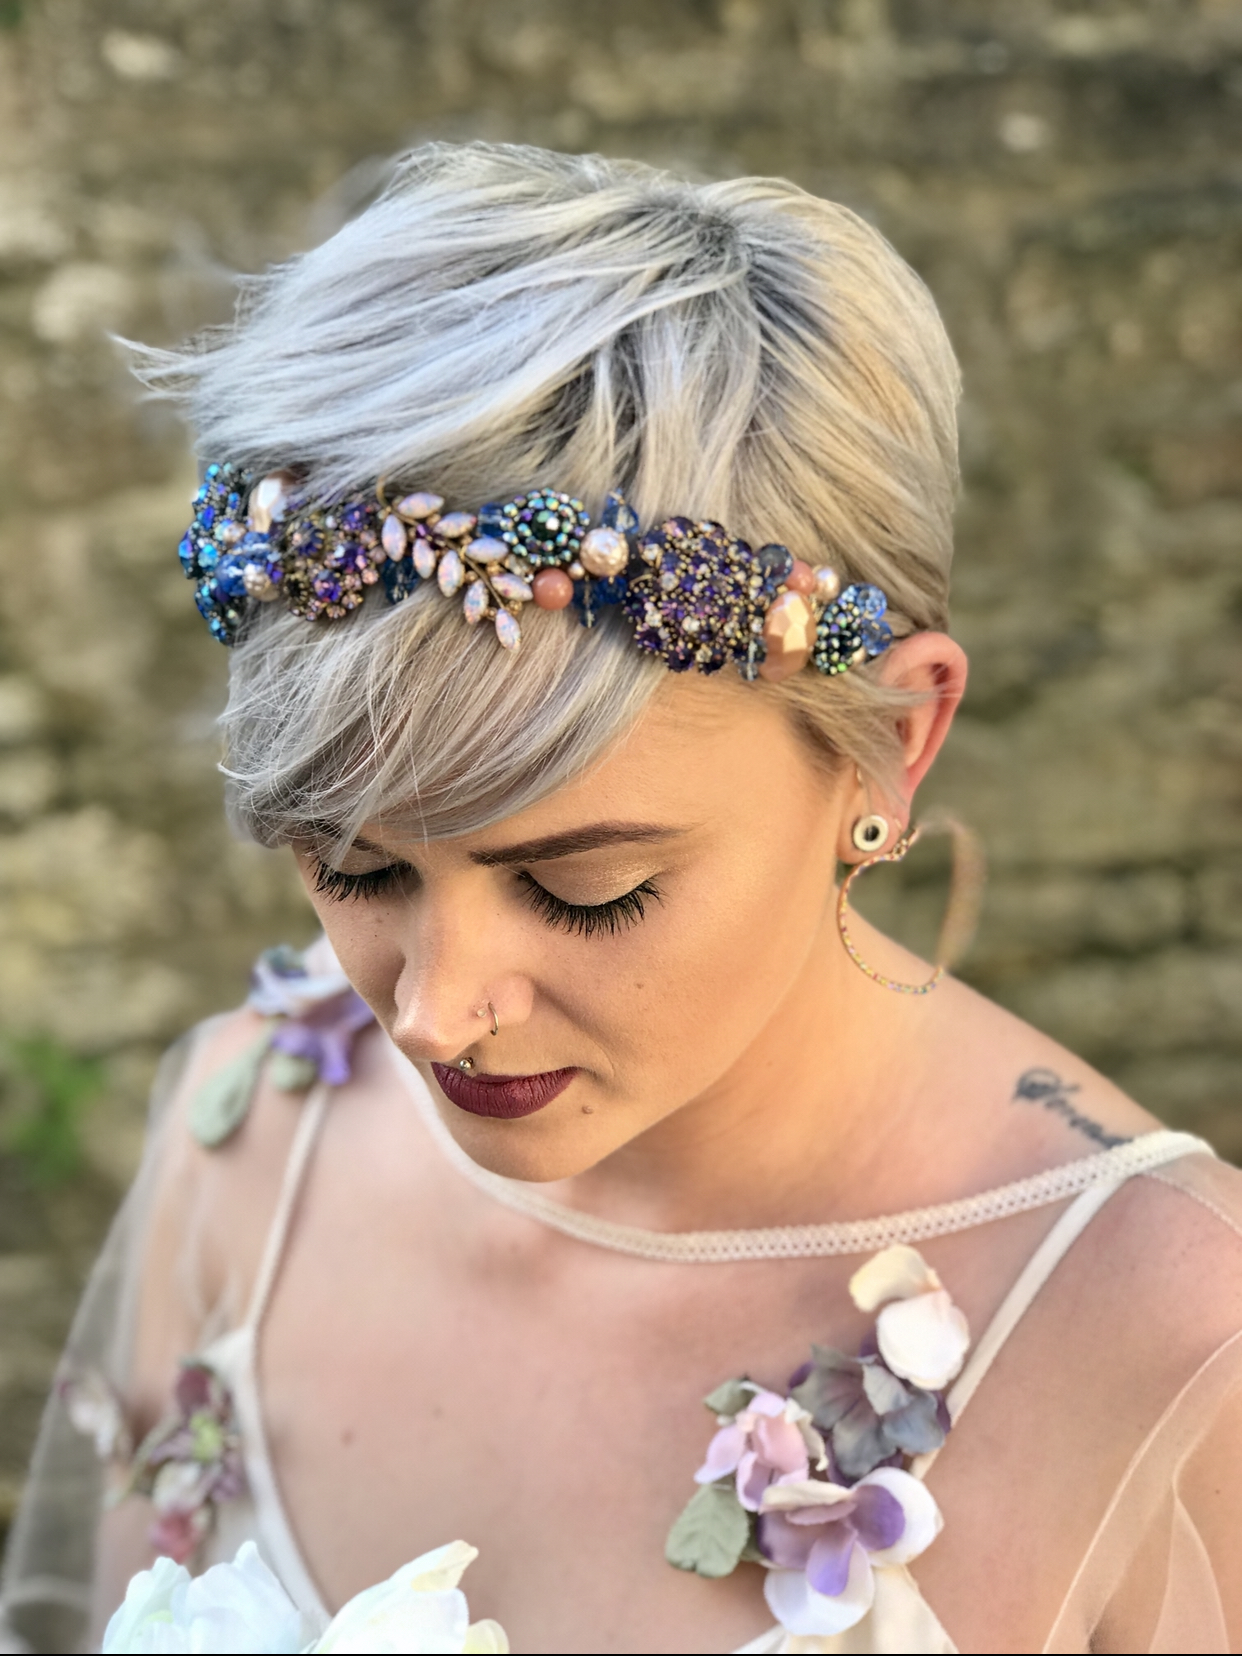 E&W Couture Bridal Event for brides wanting to be truly unique!